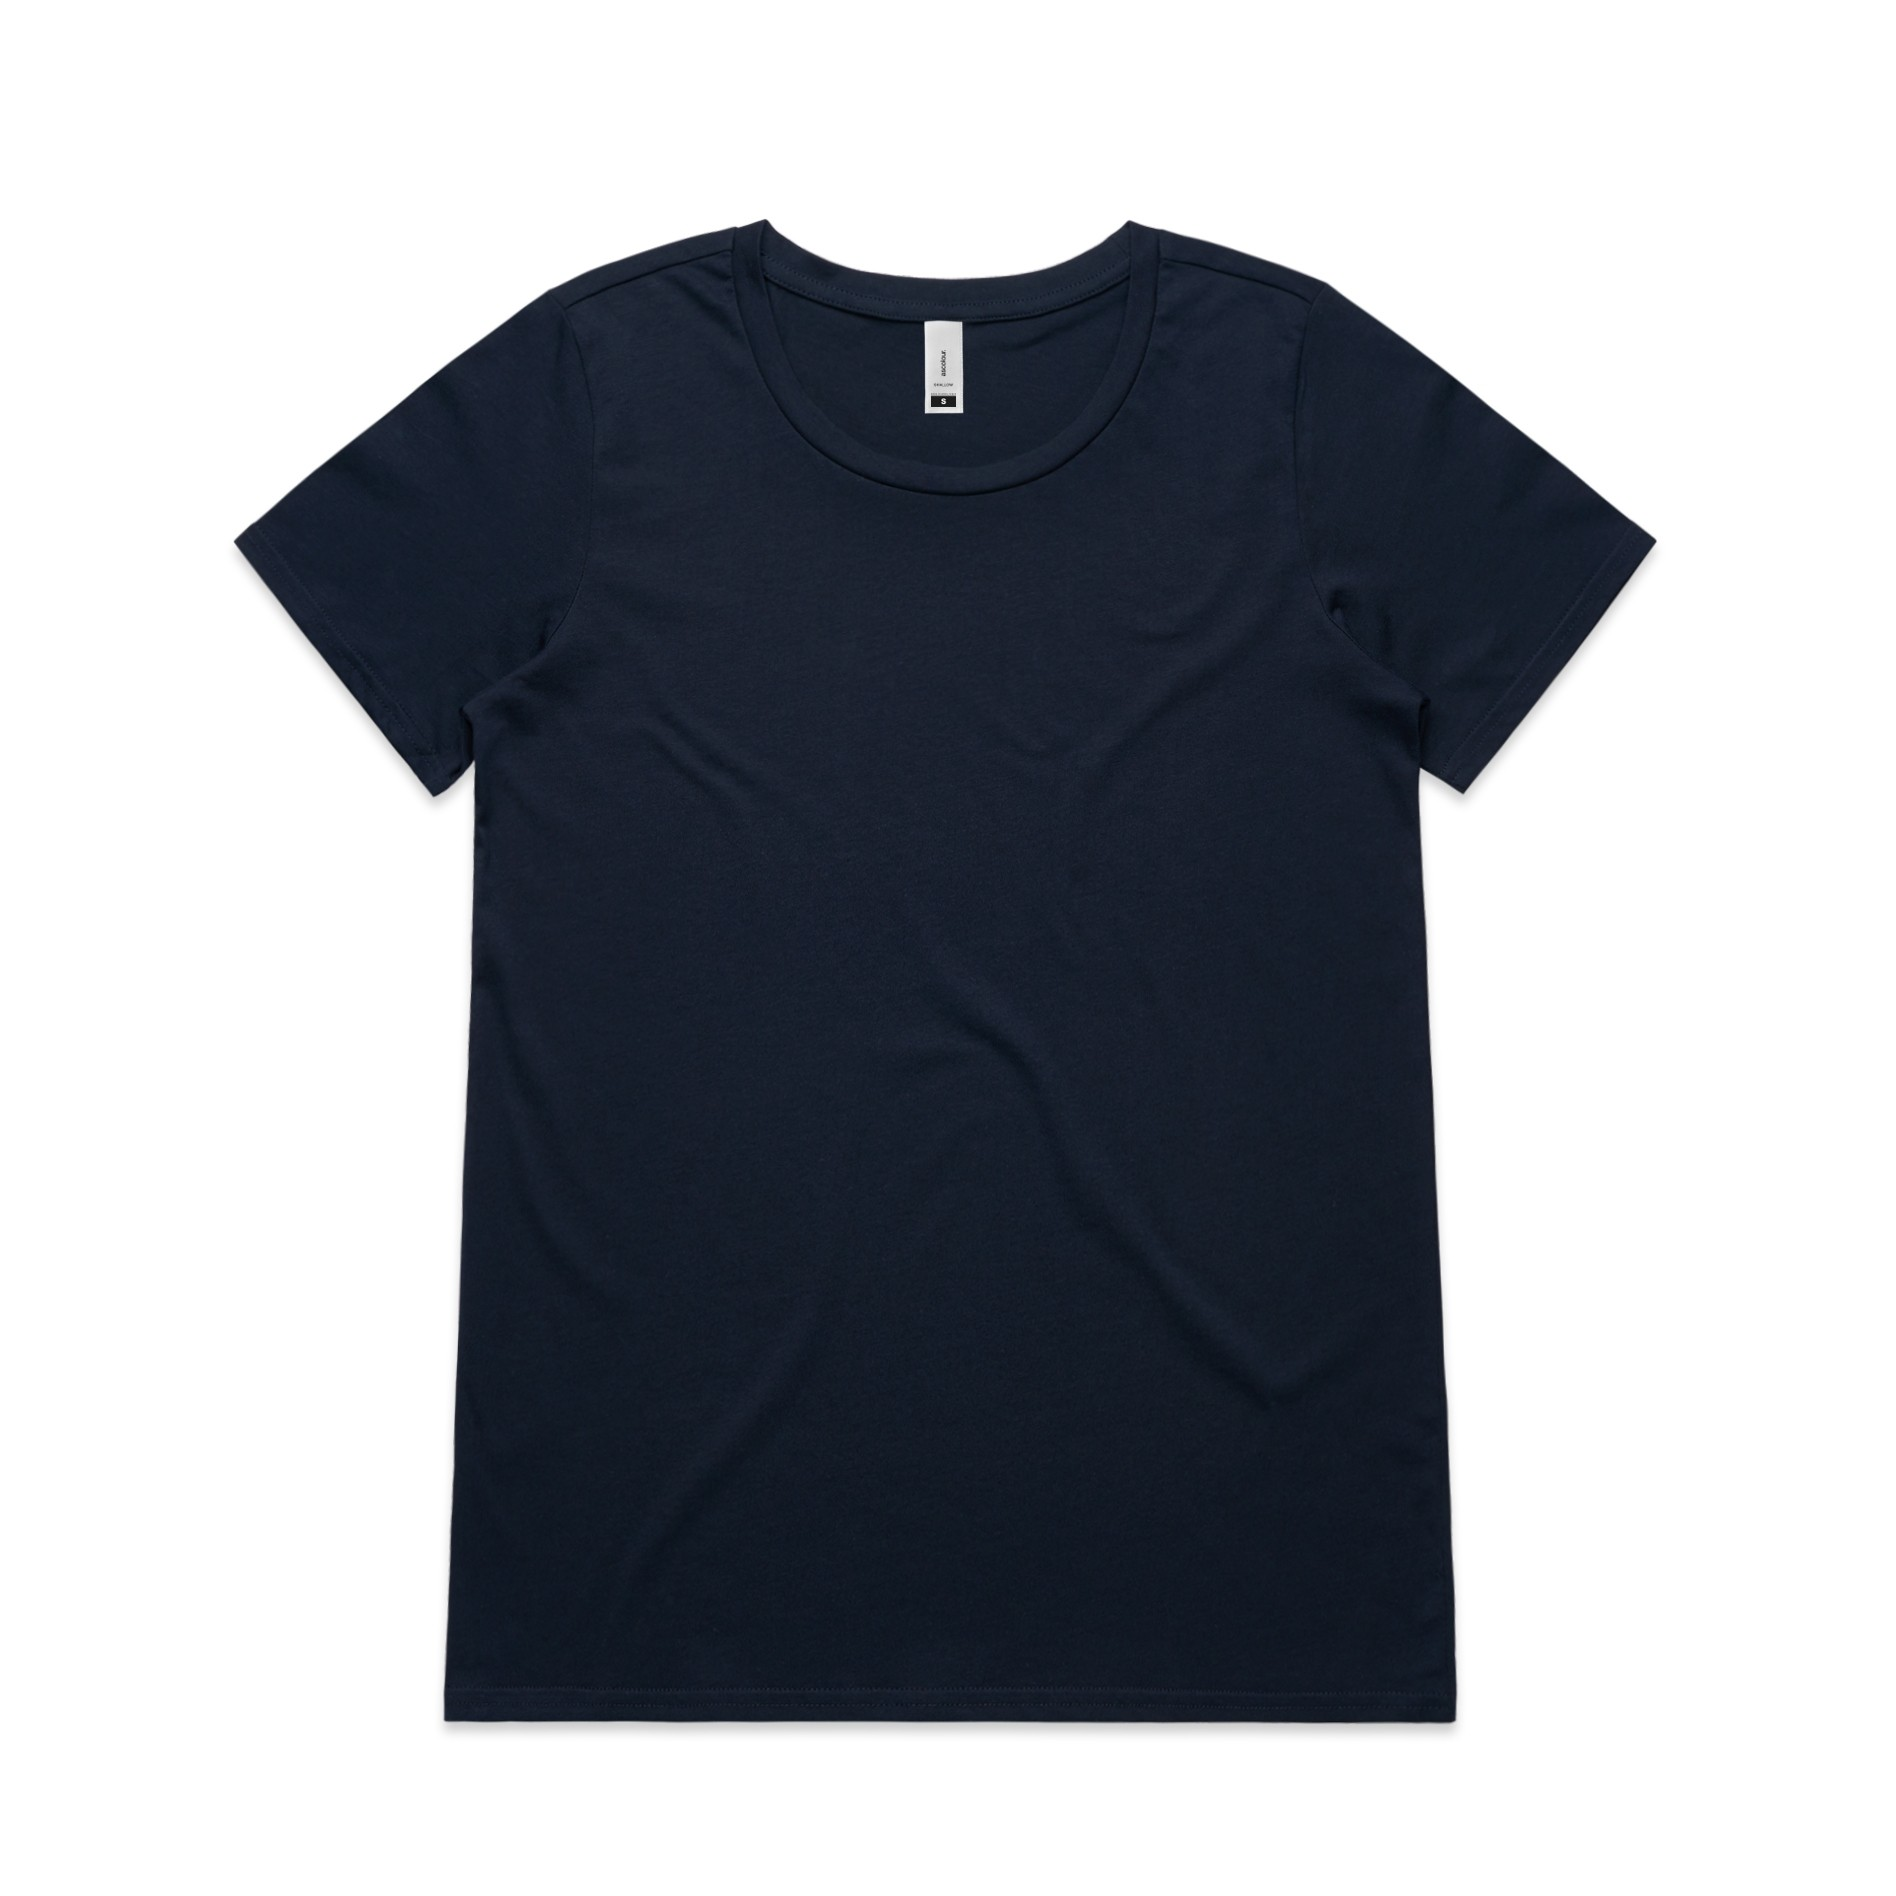 WO's Shallow Scoop Tee 4011 - Regular Fit | Scoop Neck | Light-Weight | 150 gsm | 100% Combed Cotton | Preshrunk | 4 Colours